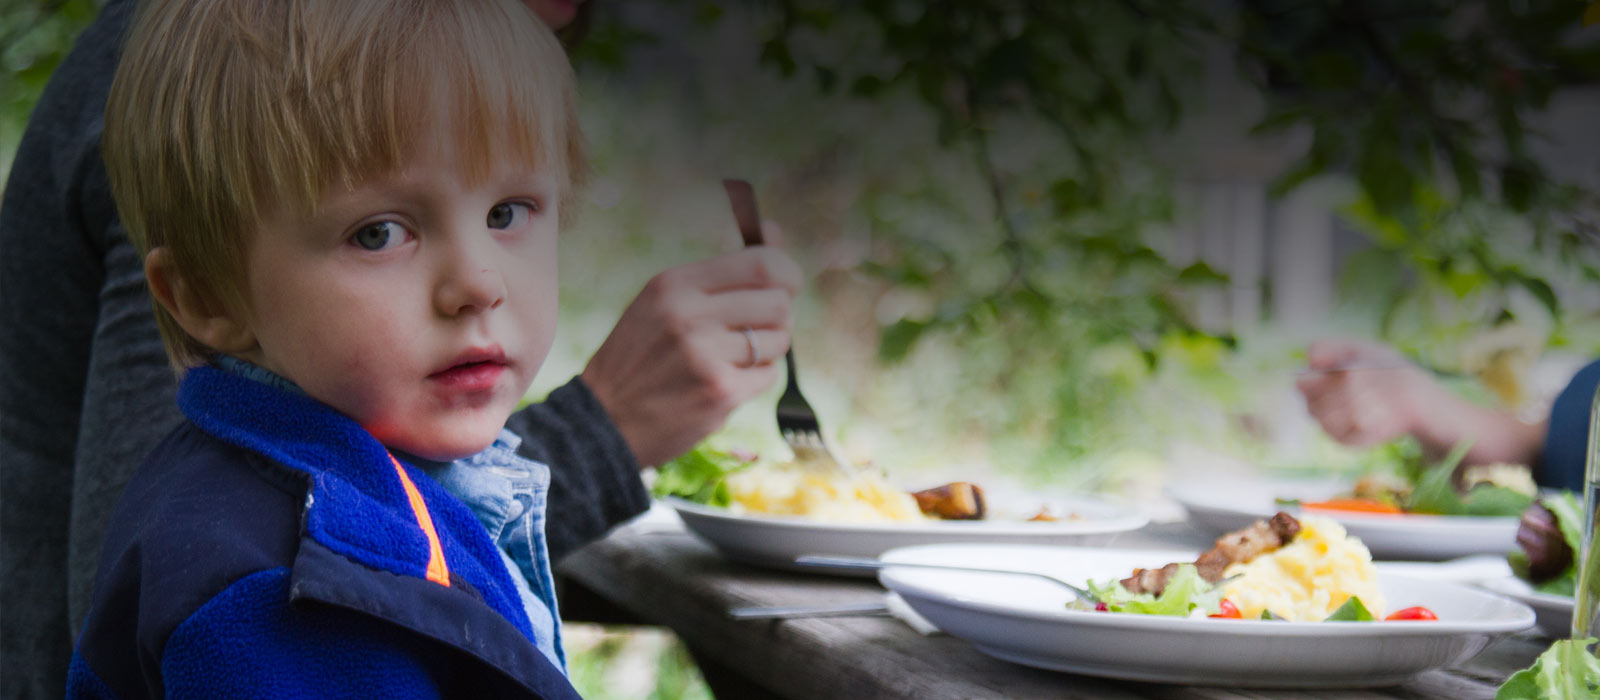 Feed families in need home page image.